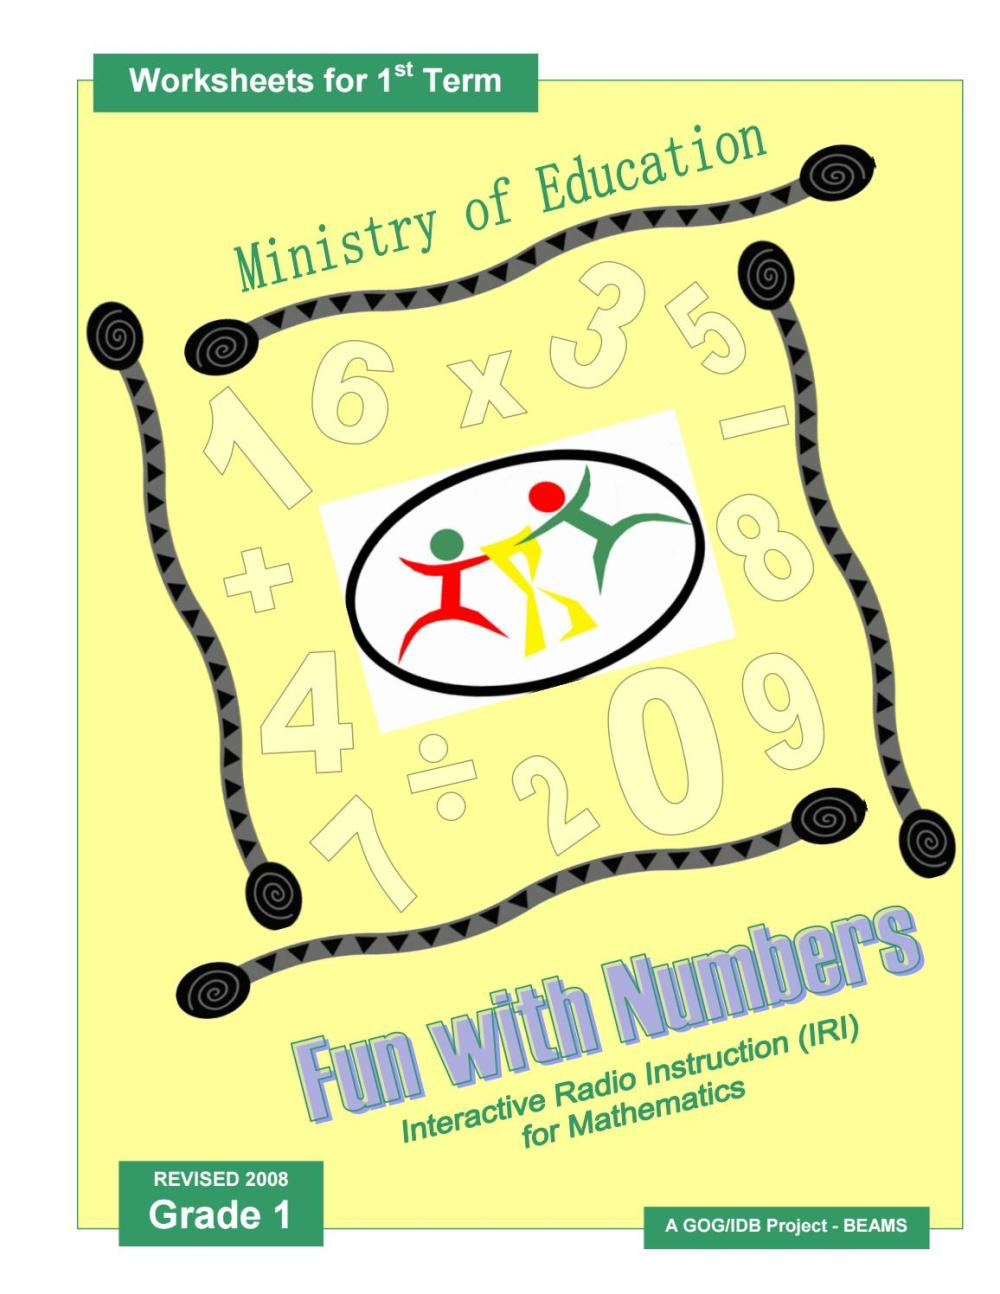 medium resolution of IRI Fun with Numbers Worksheets - Grade 1 - Term 1 by Ministry of Education  Guyana - issuu